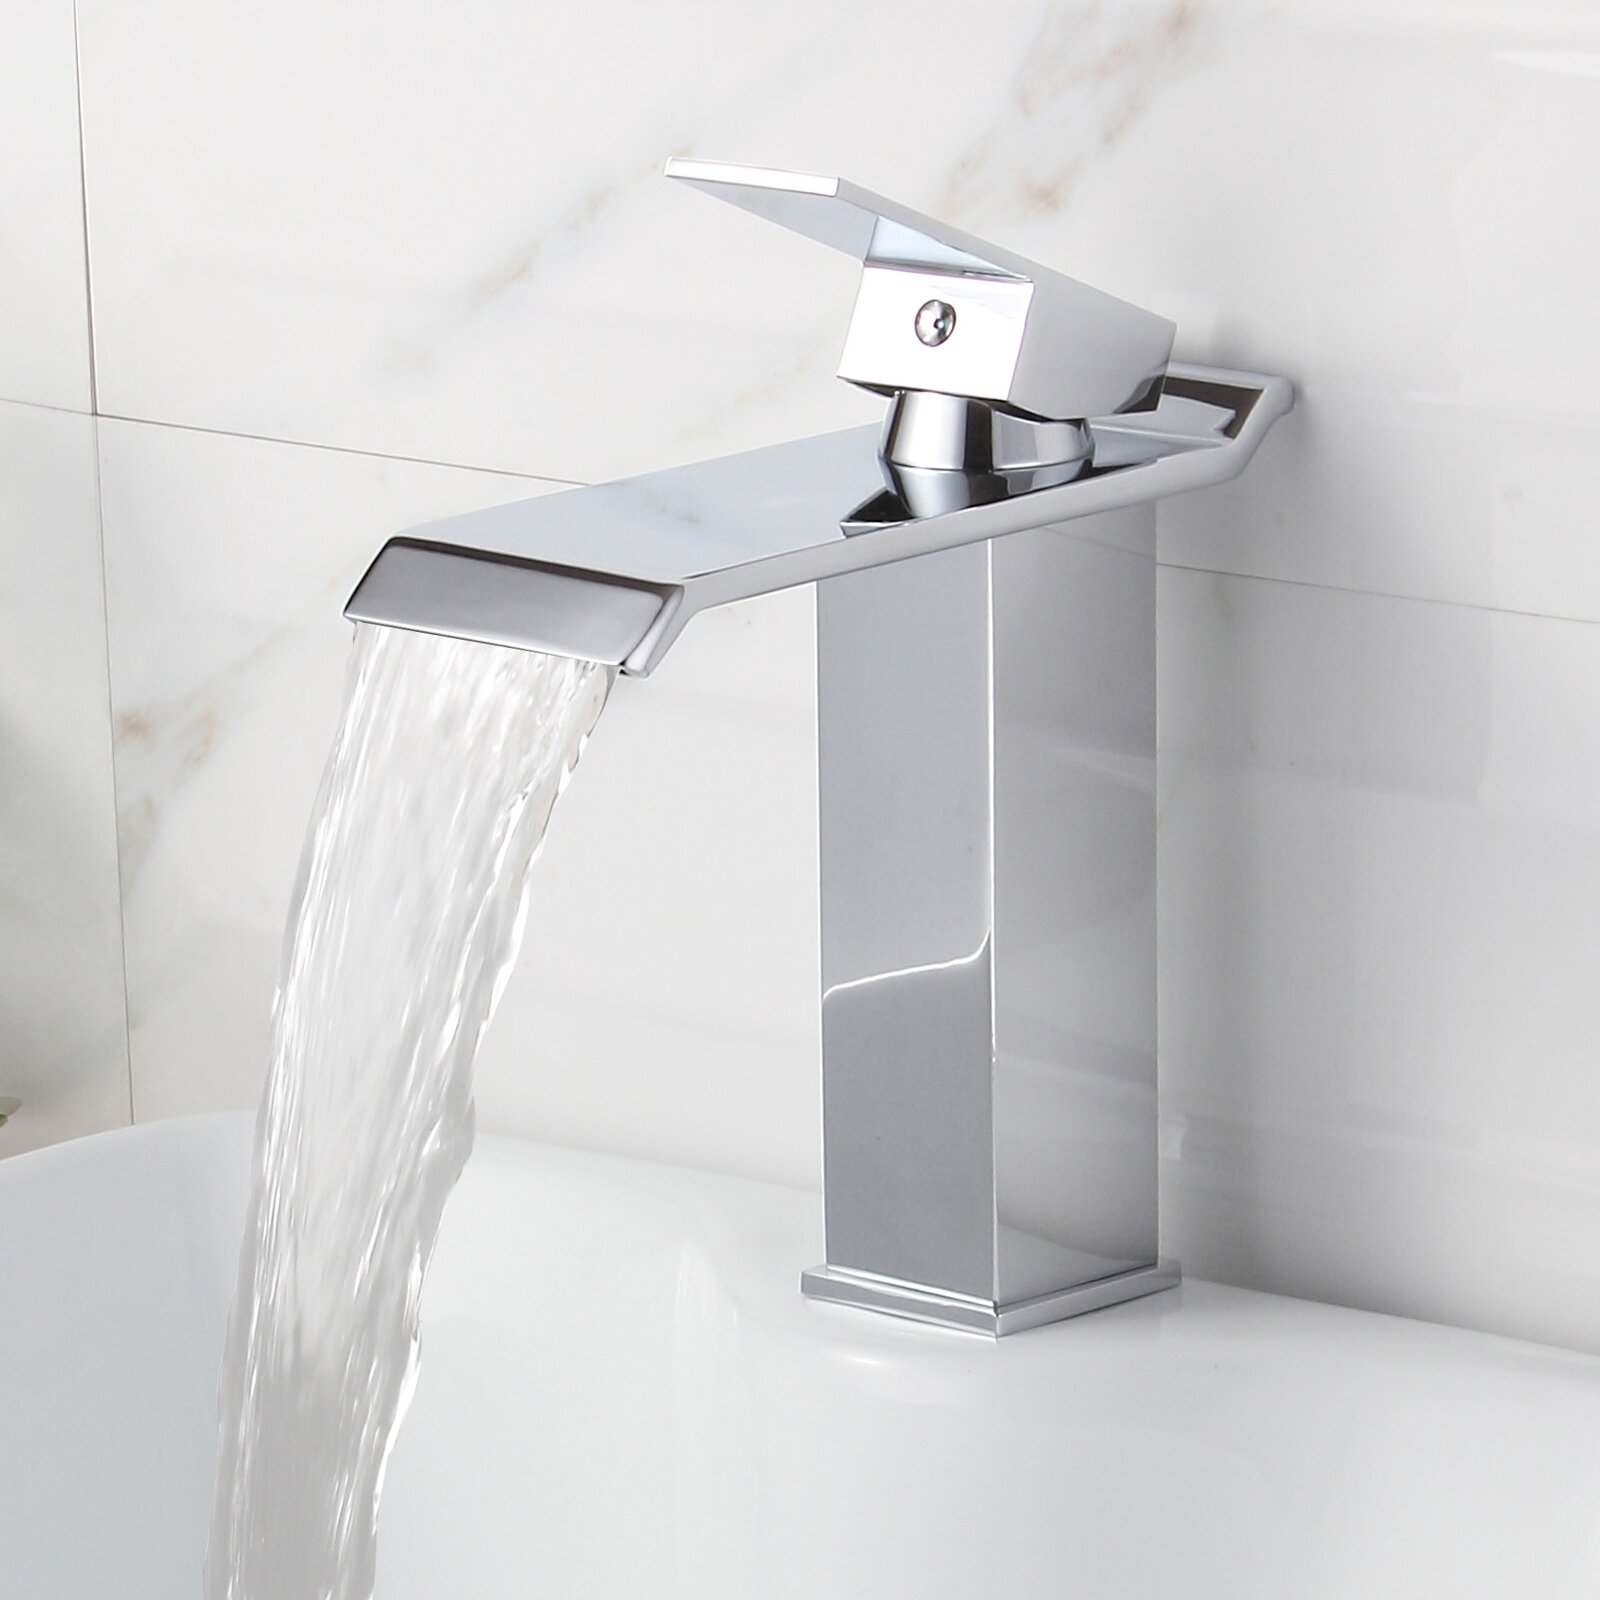 Elite single handle bathroom waterfall faucet reviews wayfair for Waterfall faucets for bathroom